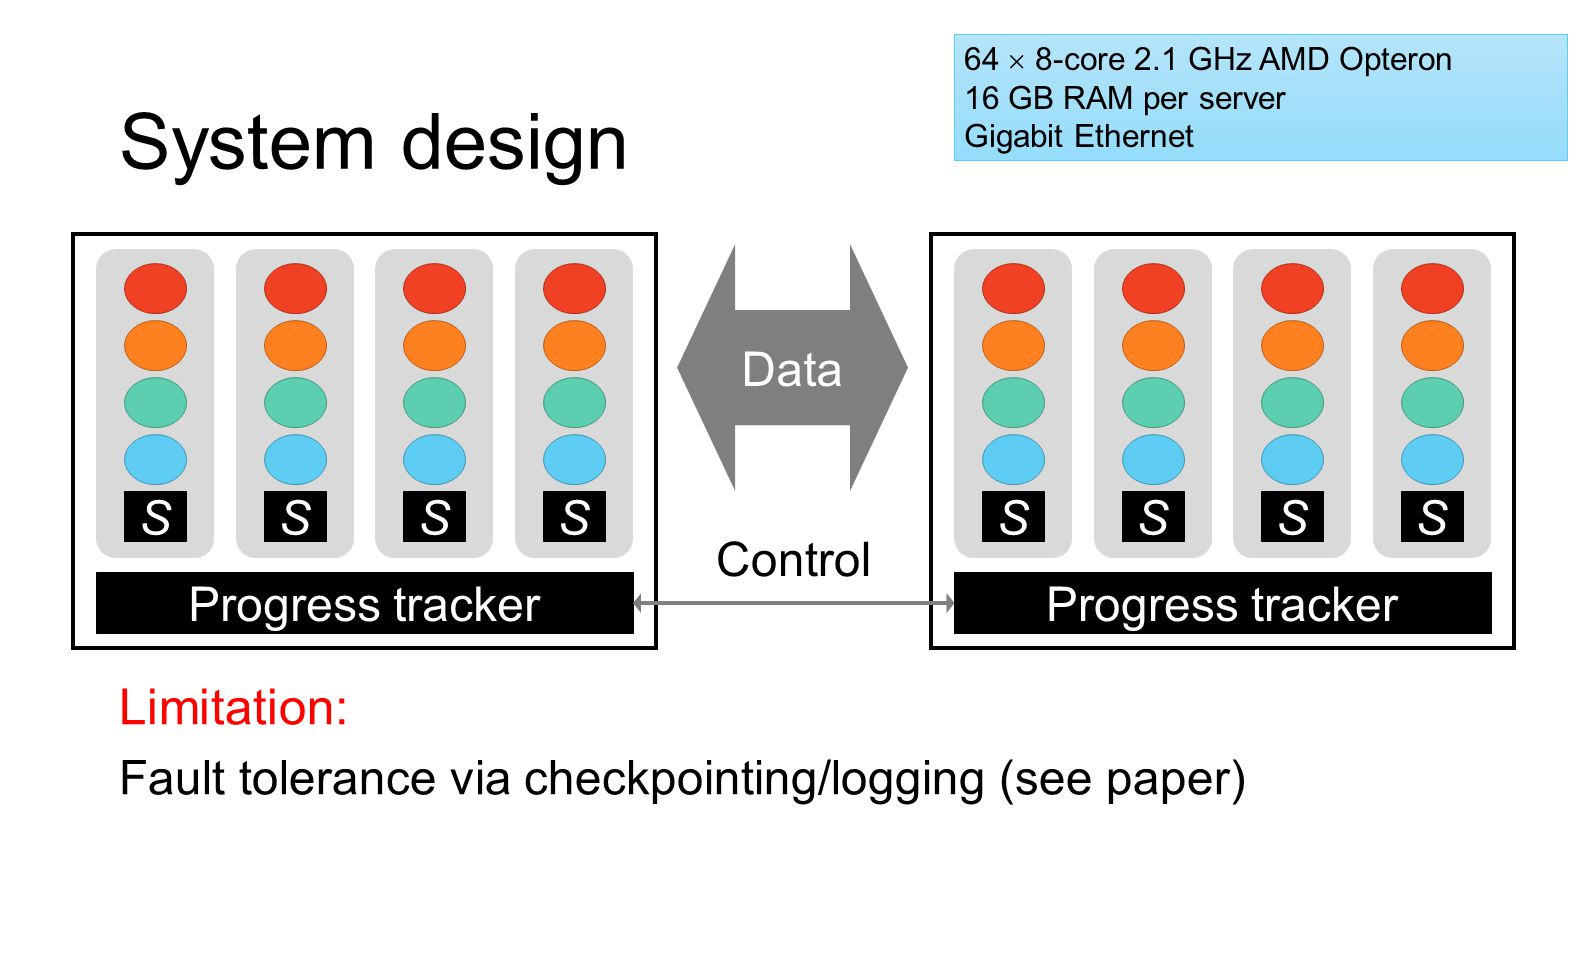 System design Limitation: Fault tolerance via checkpointing/logging (see paper) SSSS Progress tracker SSSS Data Control 64  8-core 2.1 GHz AMD Optero